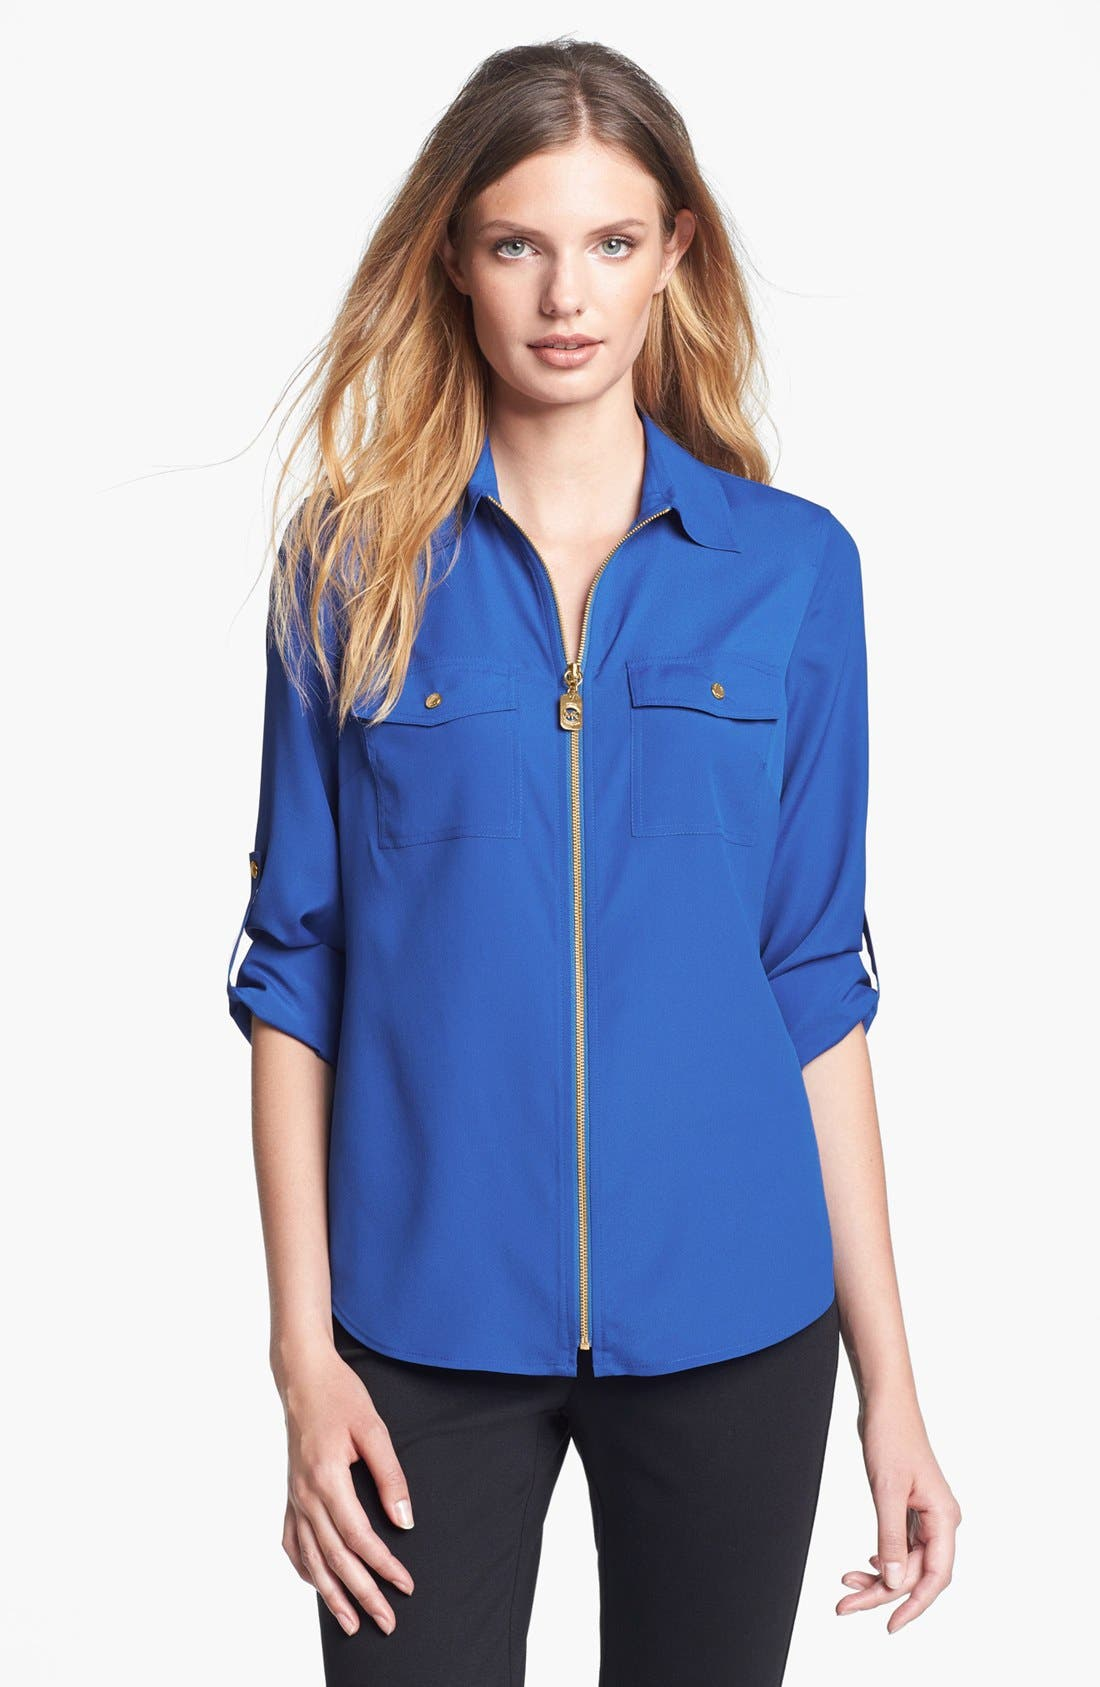 Alternate Image 1 Selected - MICHAEL Michael Kors Zip Safari Shirt (Petite)